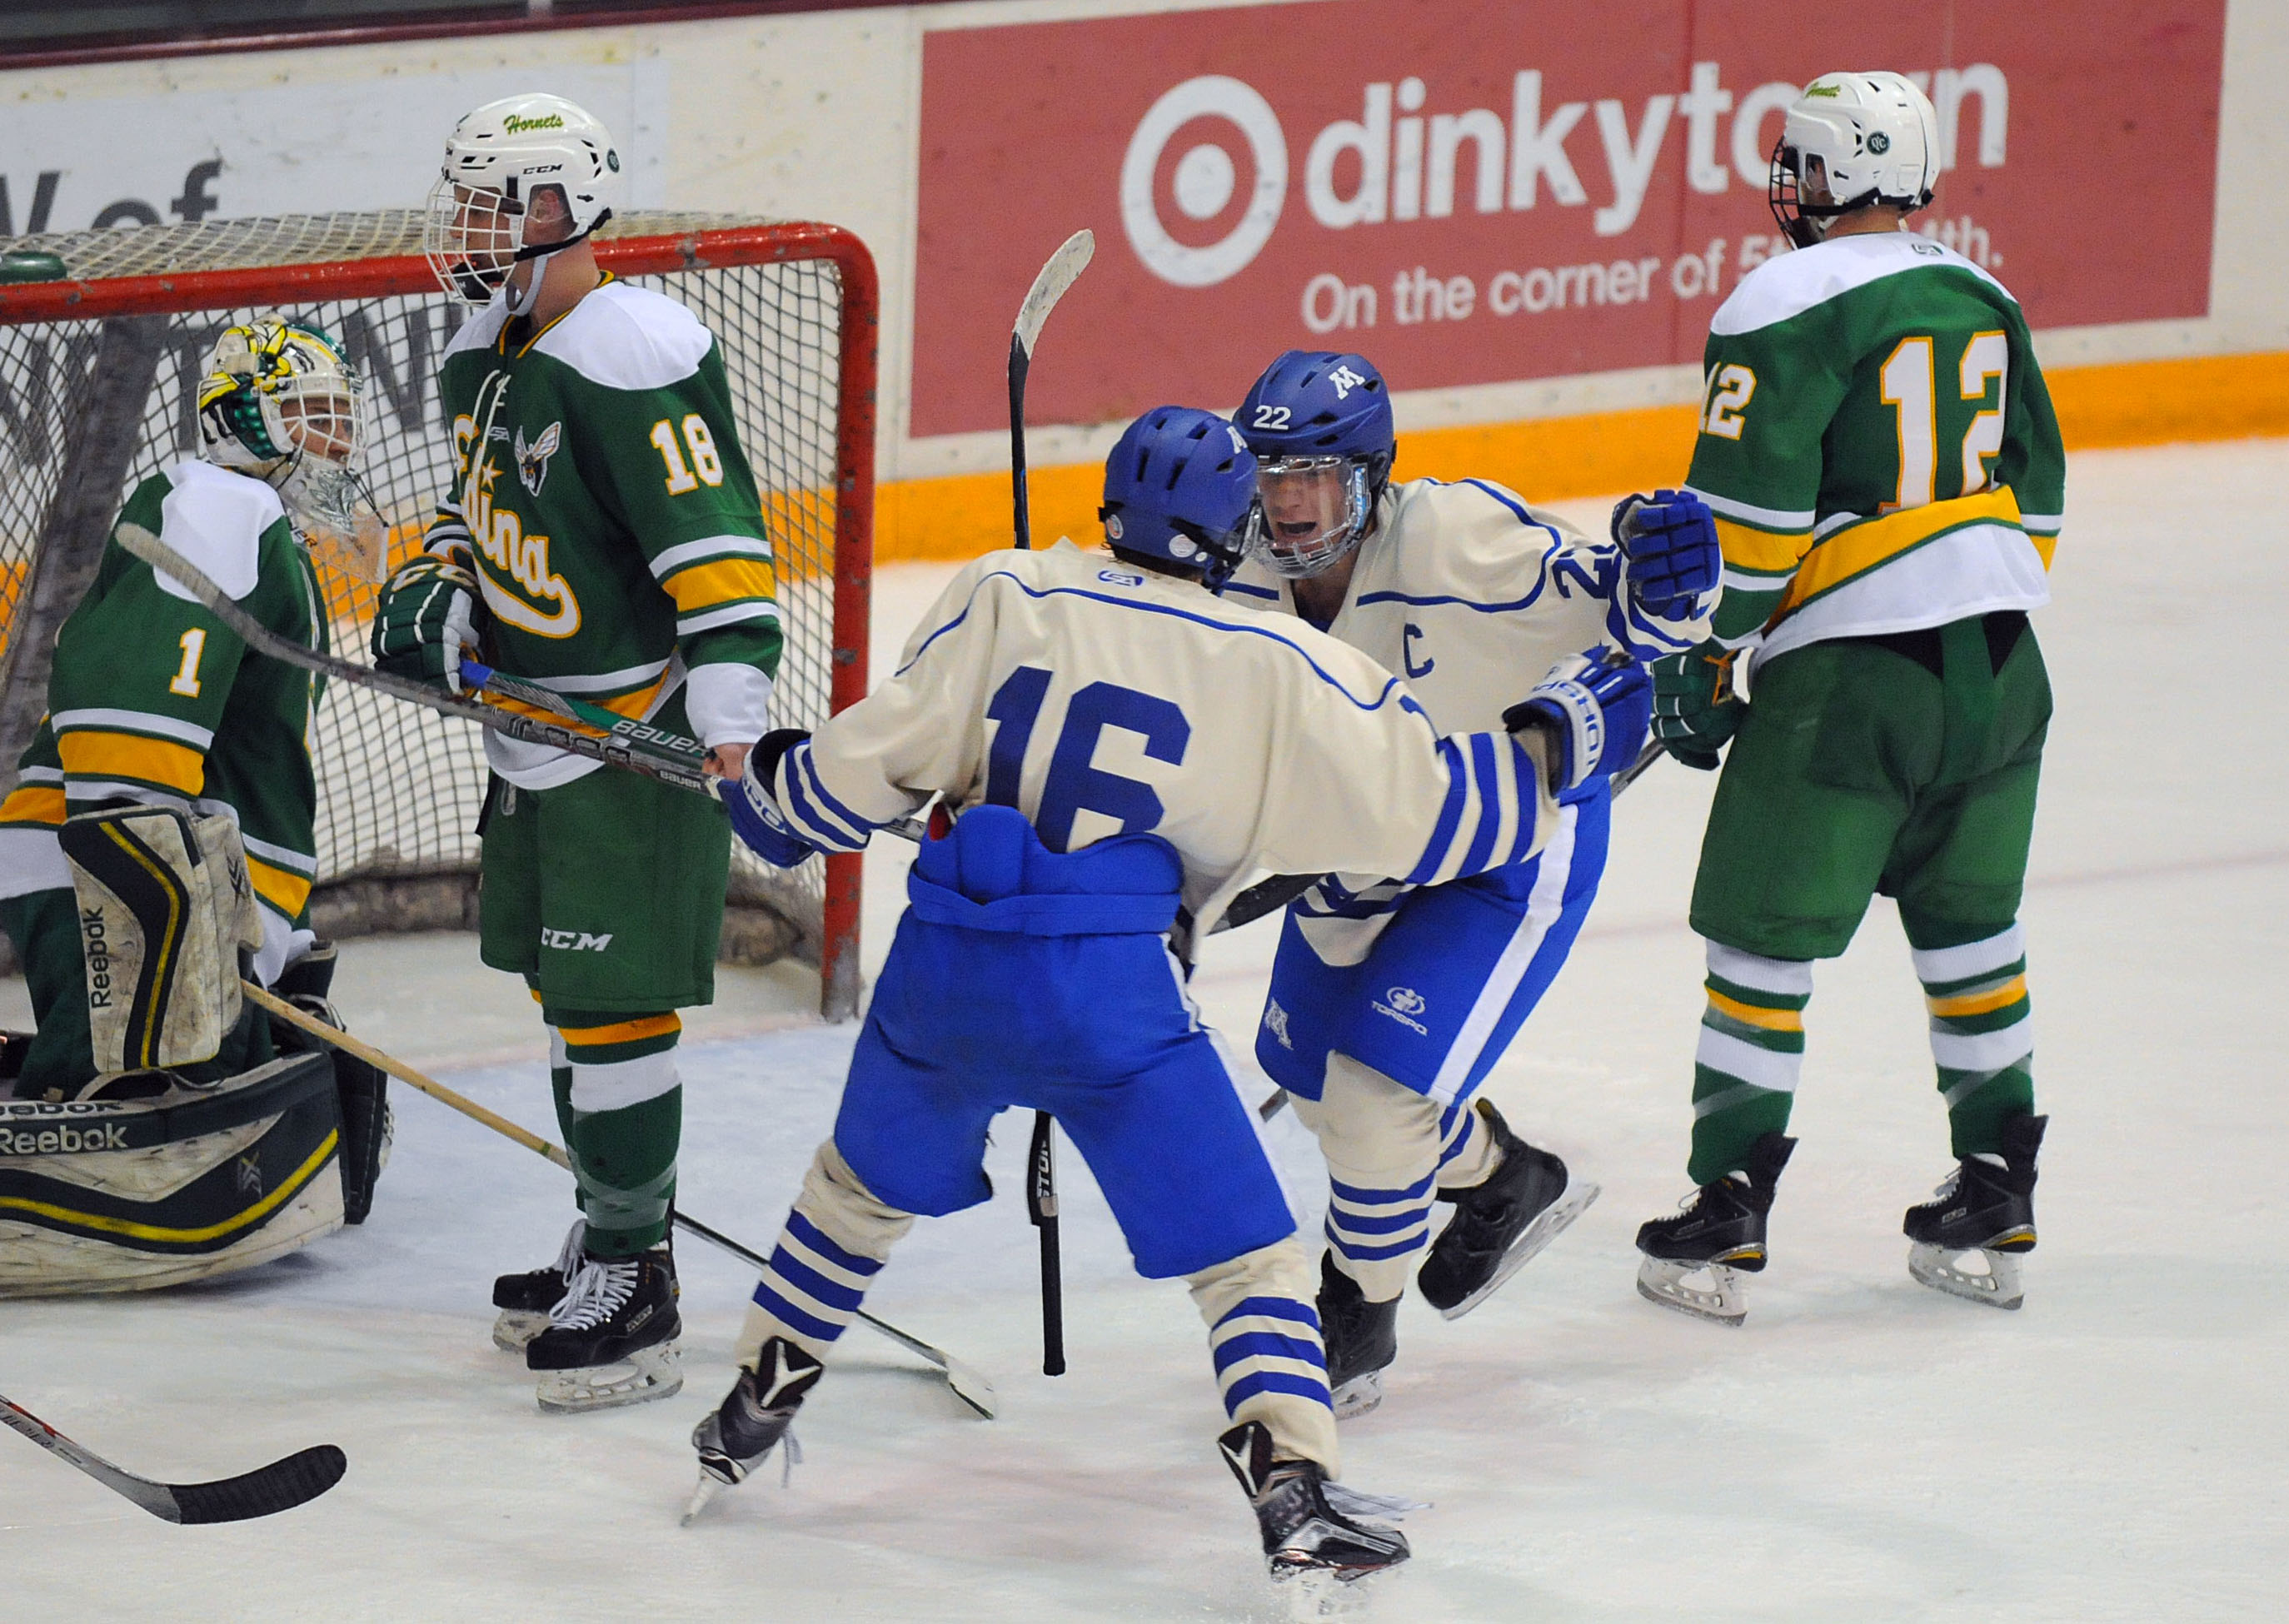 Minnetonka Scores Late Sails Past Edina And Into The Gold Division